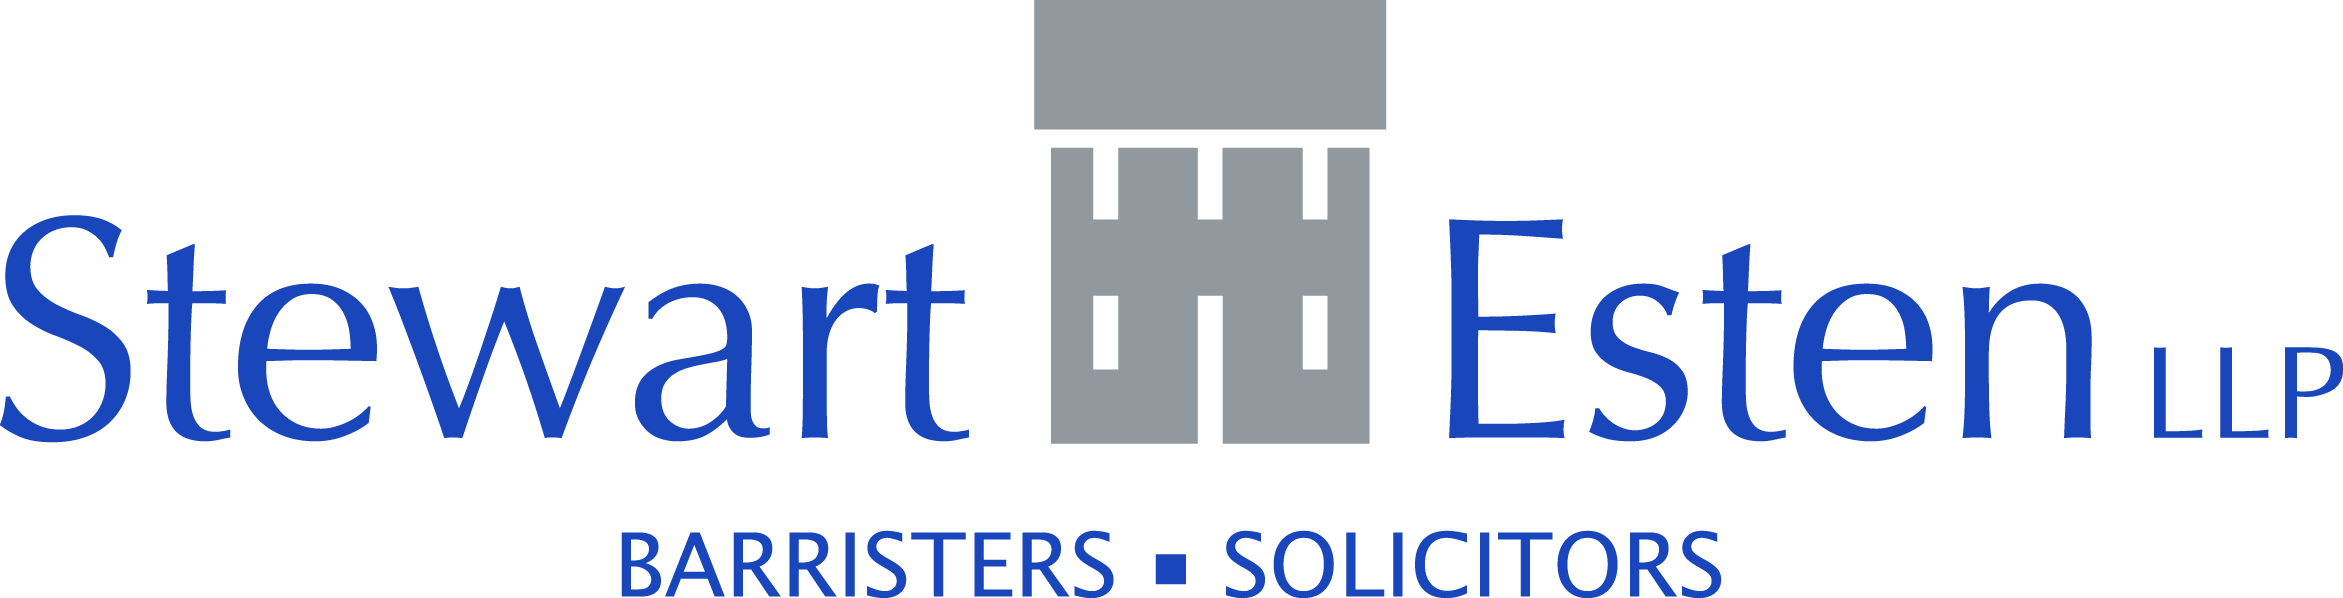 Stewart Esten Law Firm logo